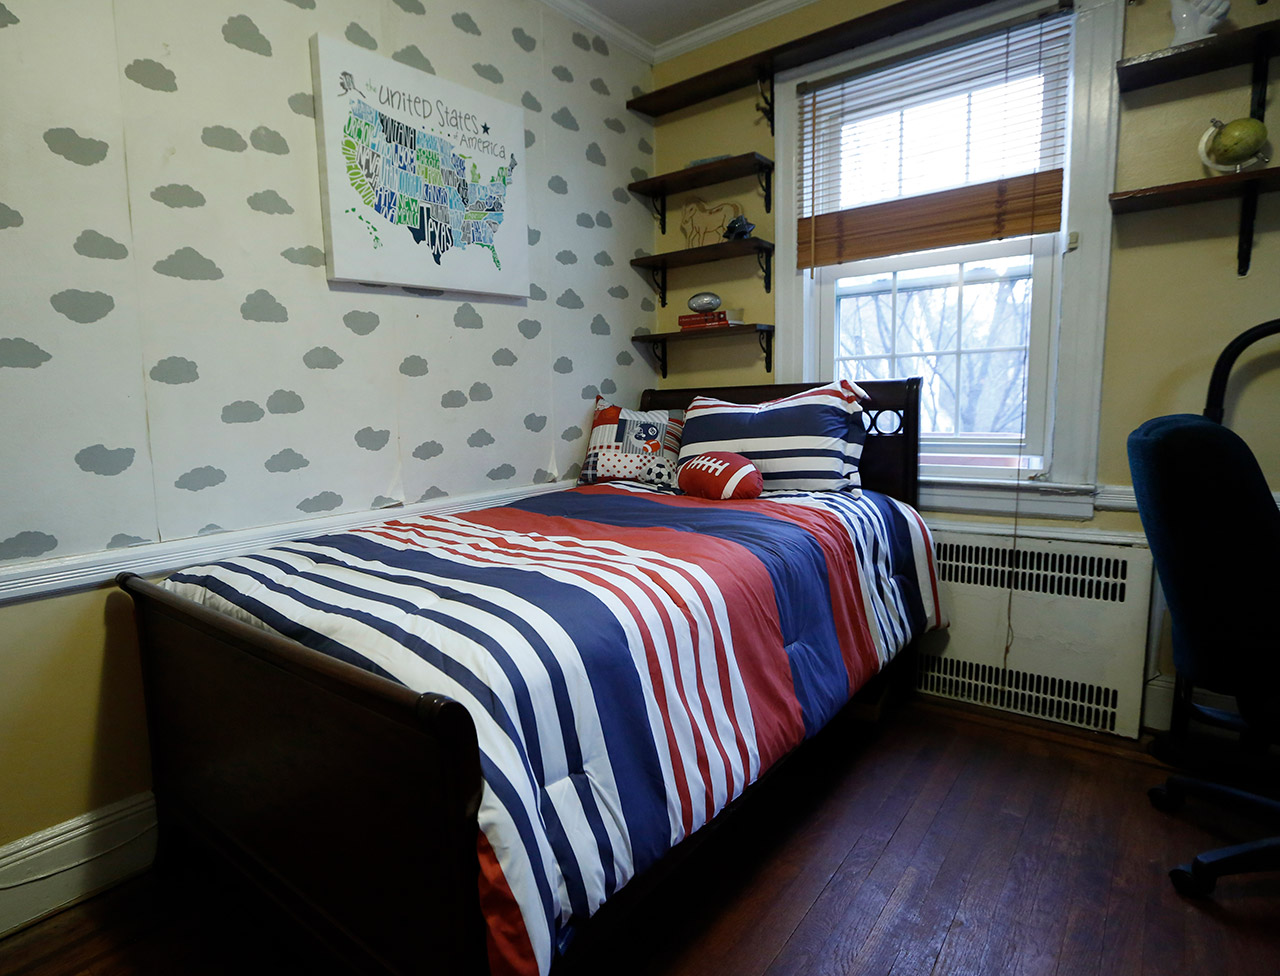 <div class='meta'><div class='origin-logo' data-origin='AP'></div><span class='caption-text' data-credit='AP Photo/Kathy Willens'>A bedroom in President-elect Donald Trump's childhood home is shown Tuesday, Jan. 17, 2017, in New York.</span></div>